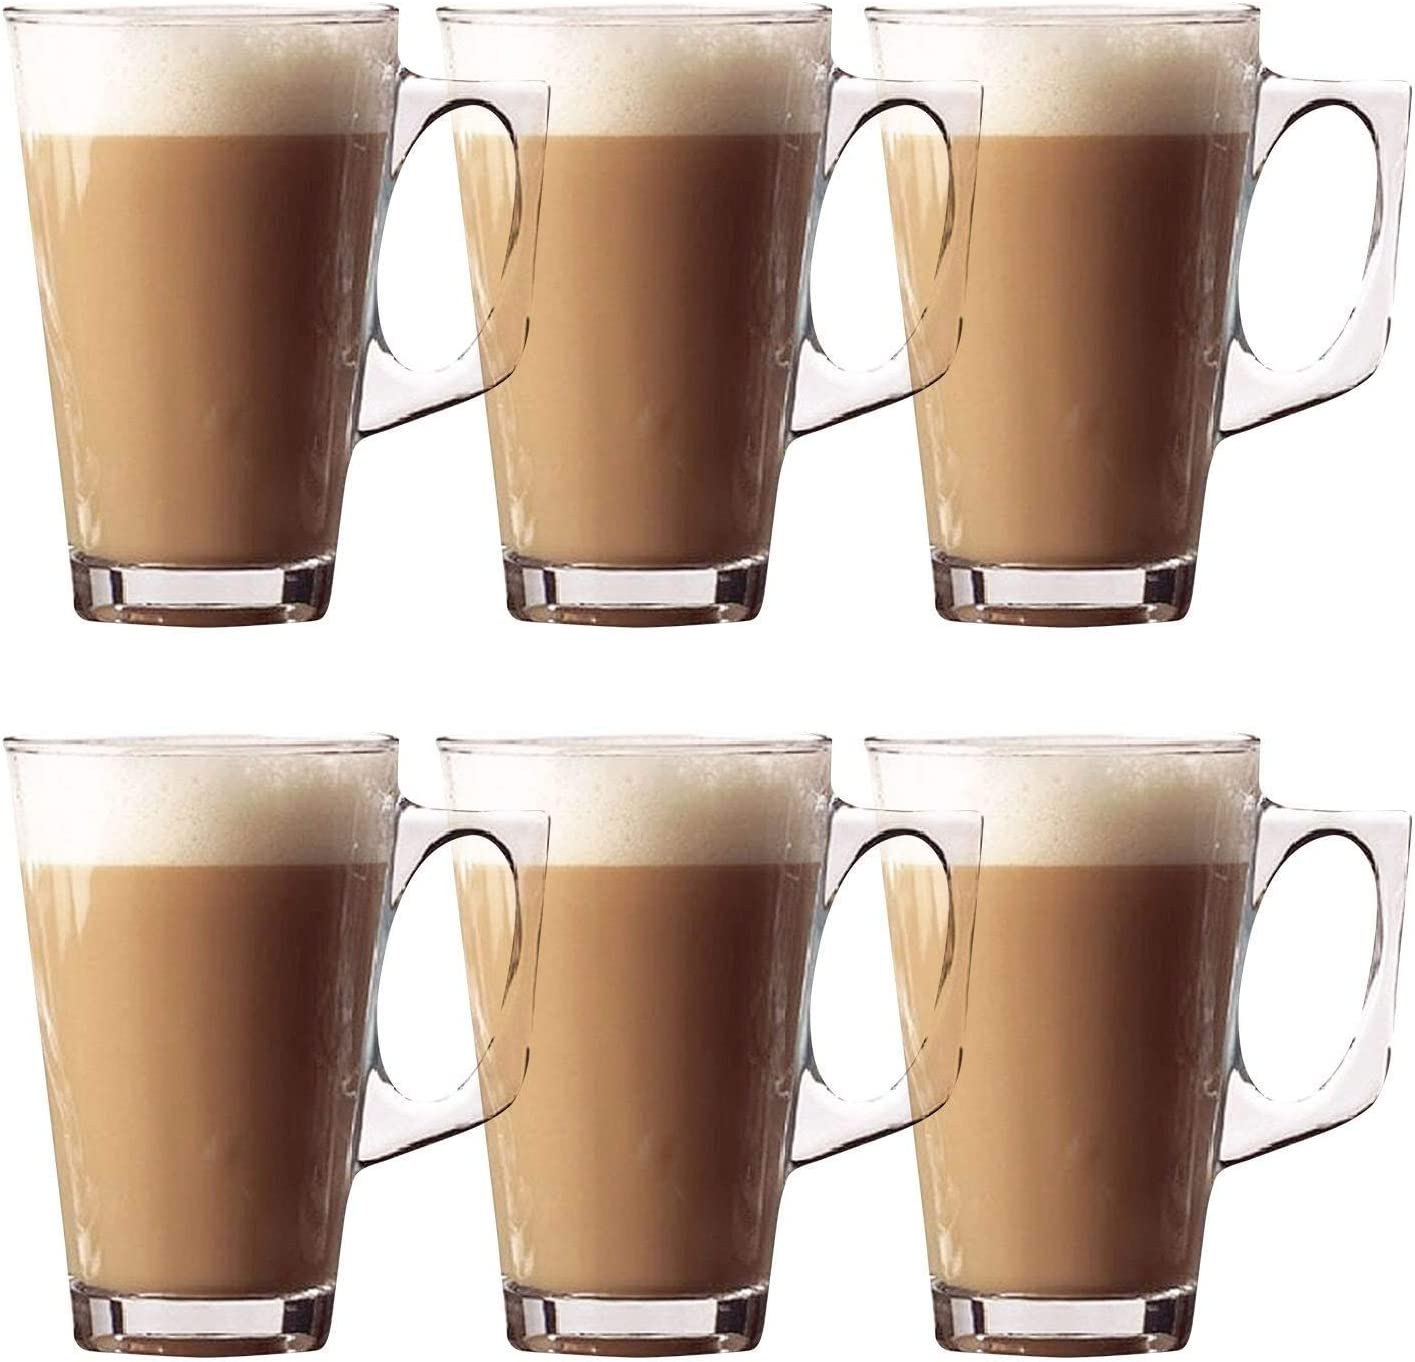 Hot Chocolate Cappuccino Coffee Ideal for Tea Set of 6 Latte Glasses /Ð Premium Pack of Stylish 11cm Cafe Mugs Cups 240ml Latte Espresso